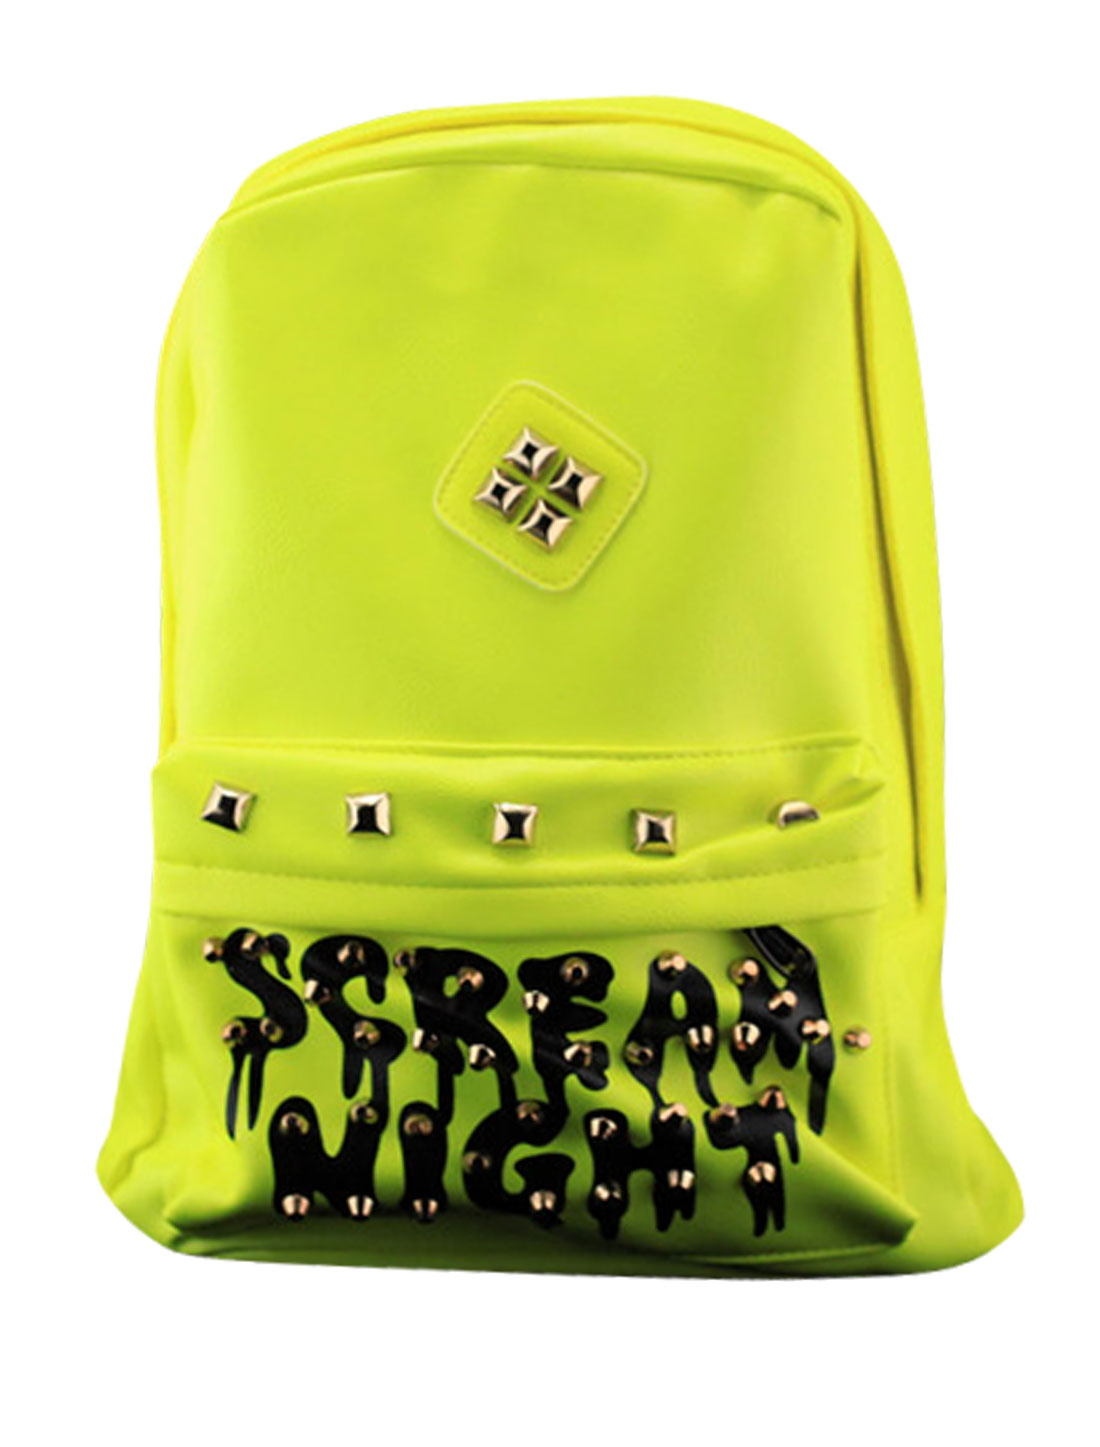 Men Letters Prints Studs Decor Imitation Leather Backpack Yellow Green